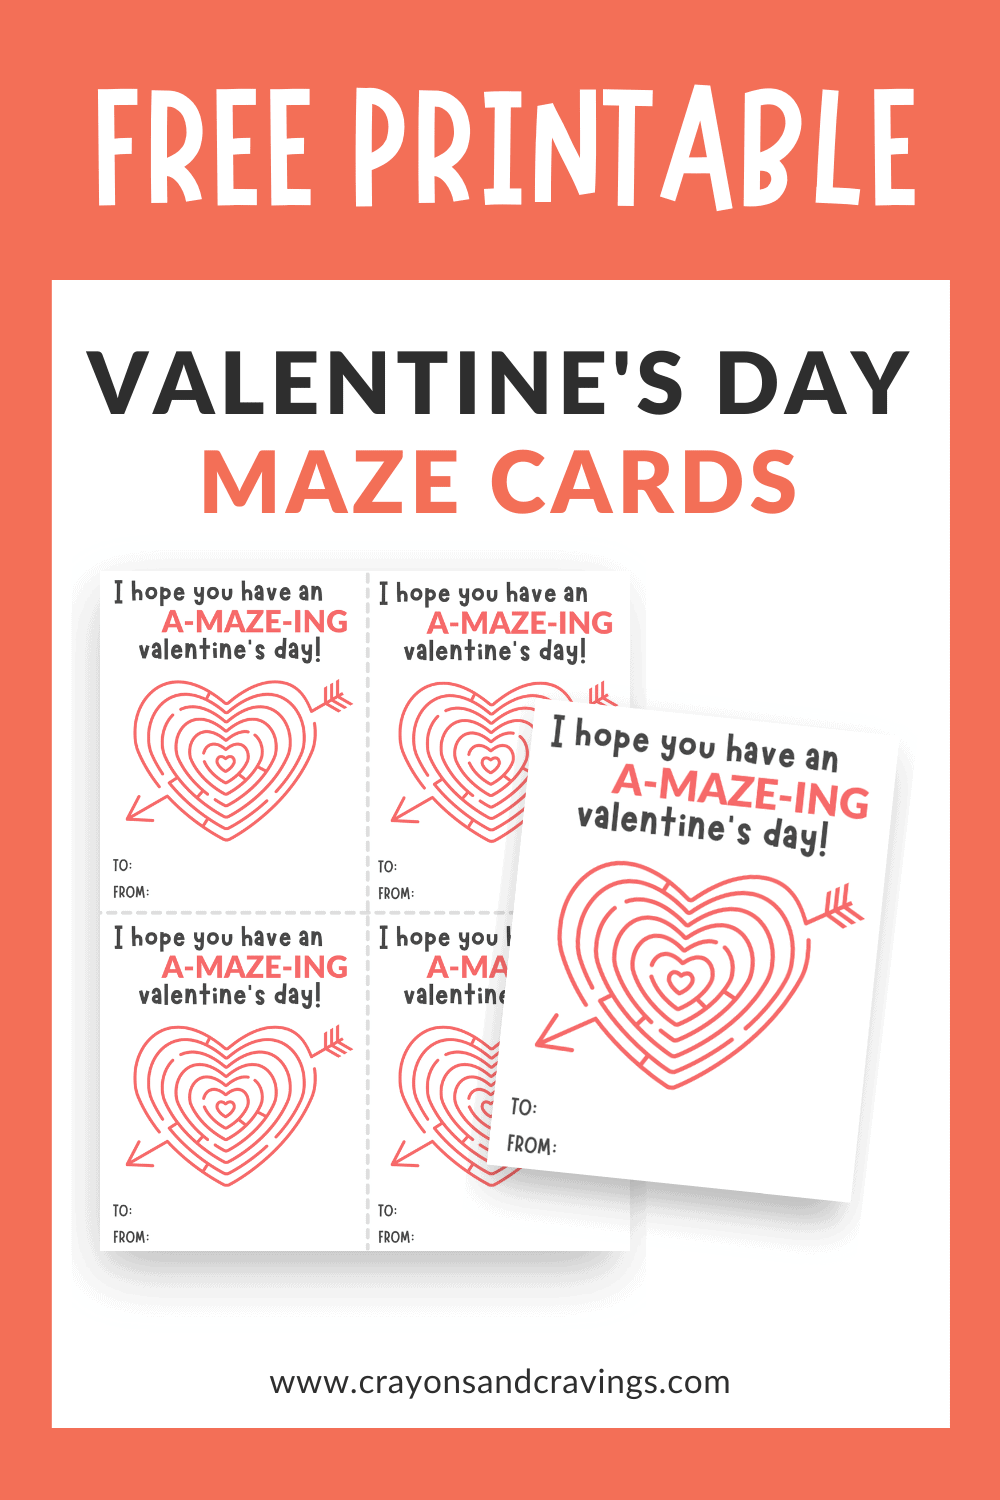 Free Printable Maze Cards